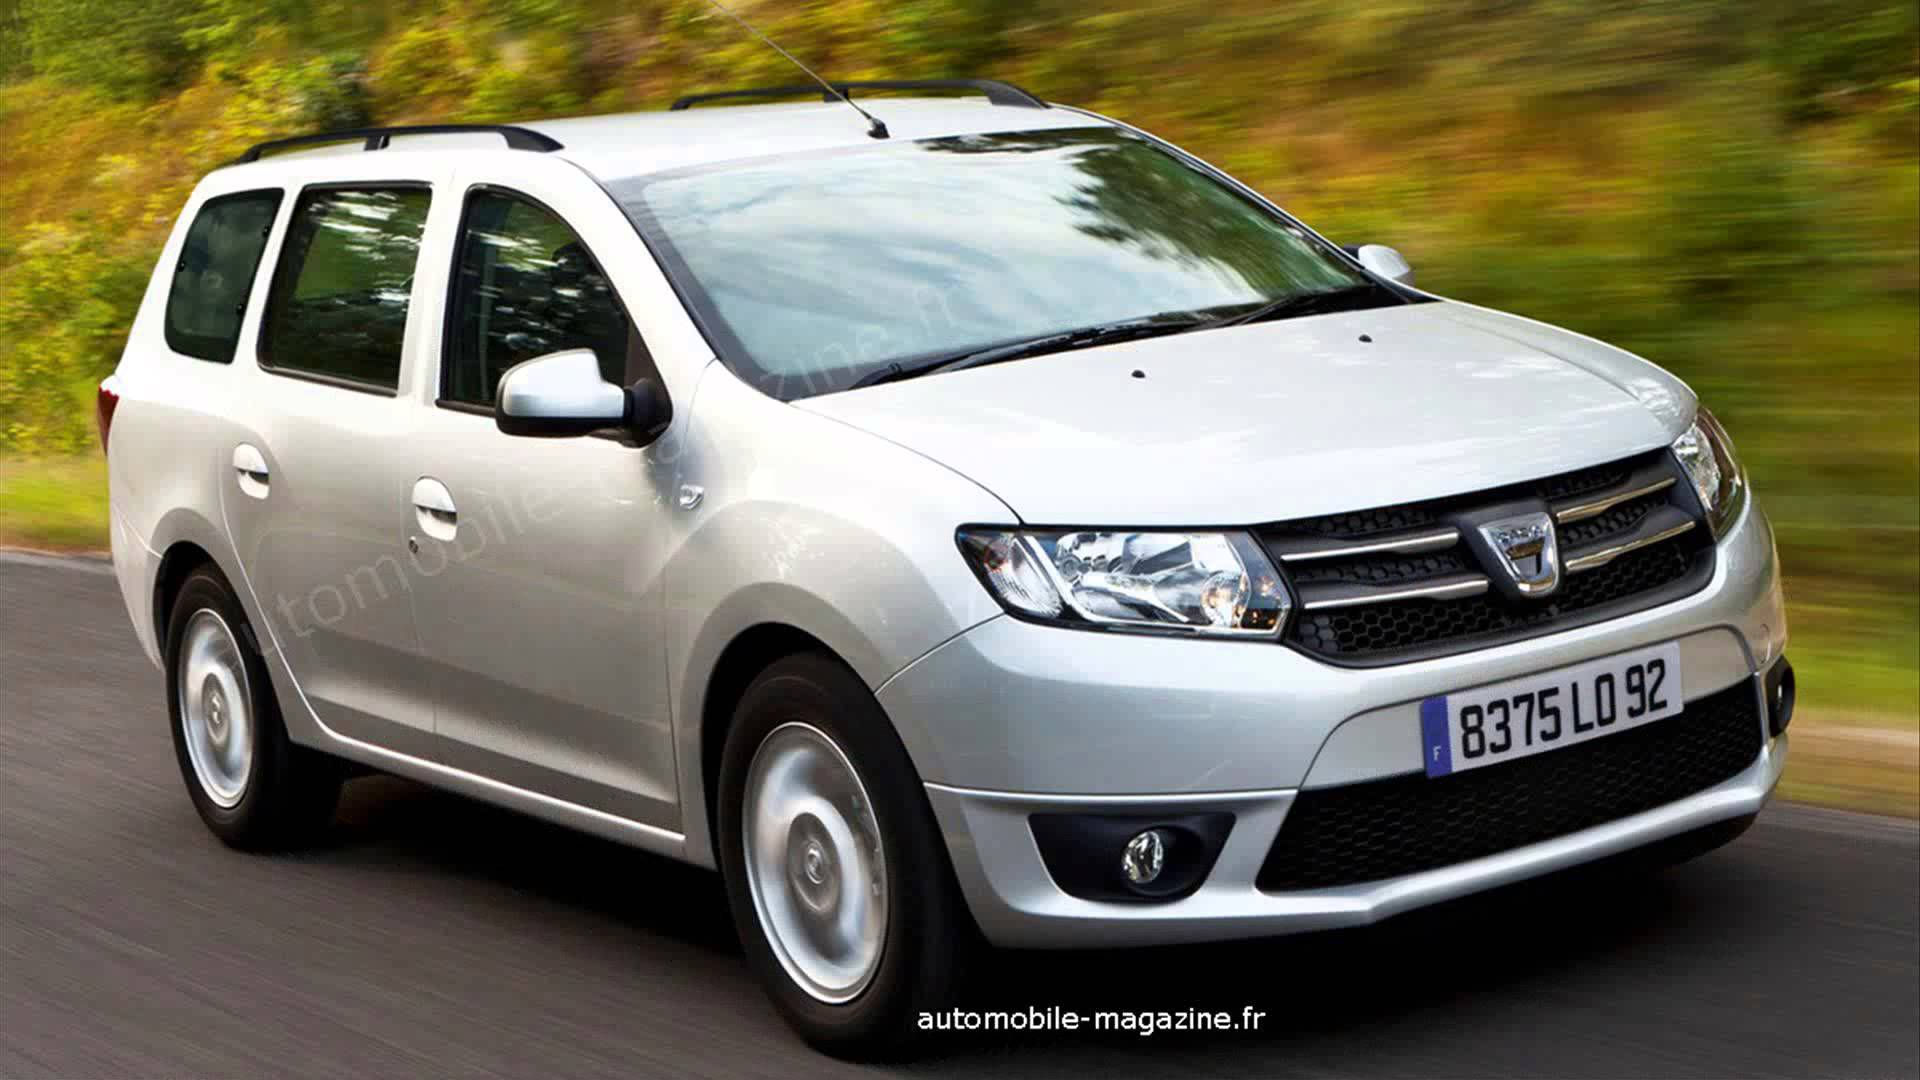 2015 Renault Logan Pictures Information And Specs 2016 Interior 10